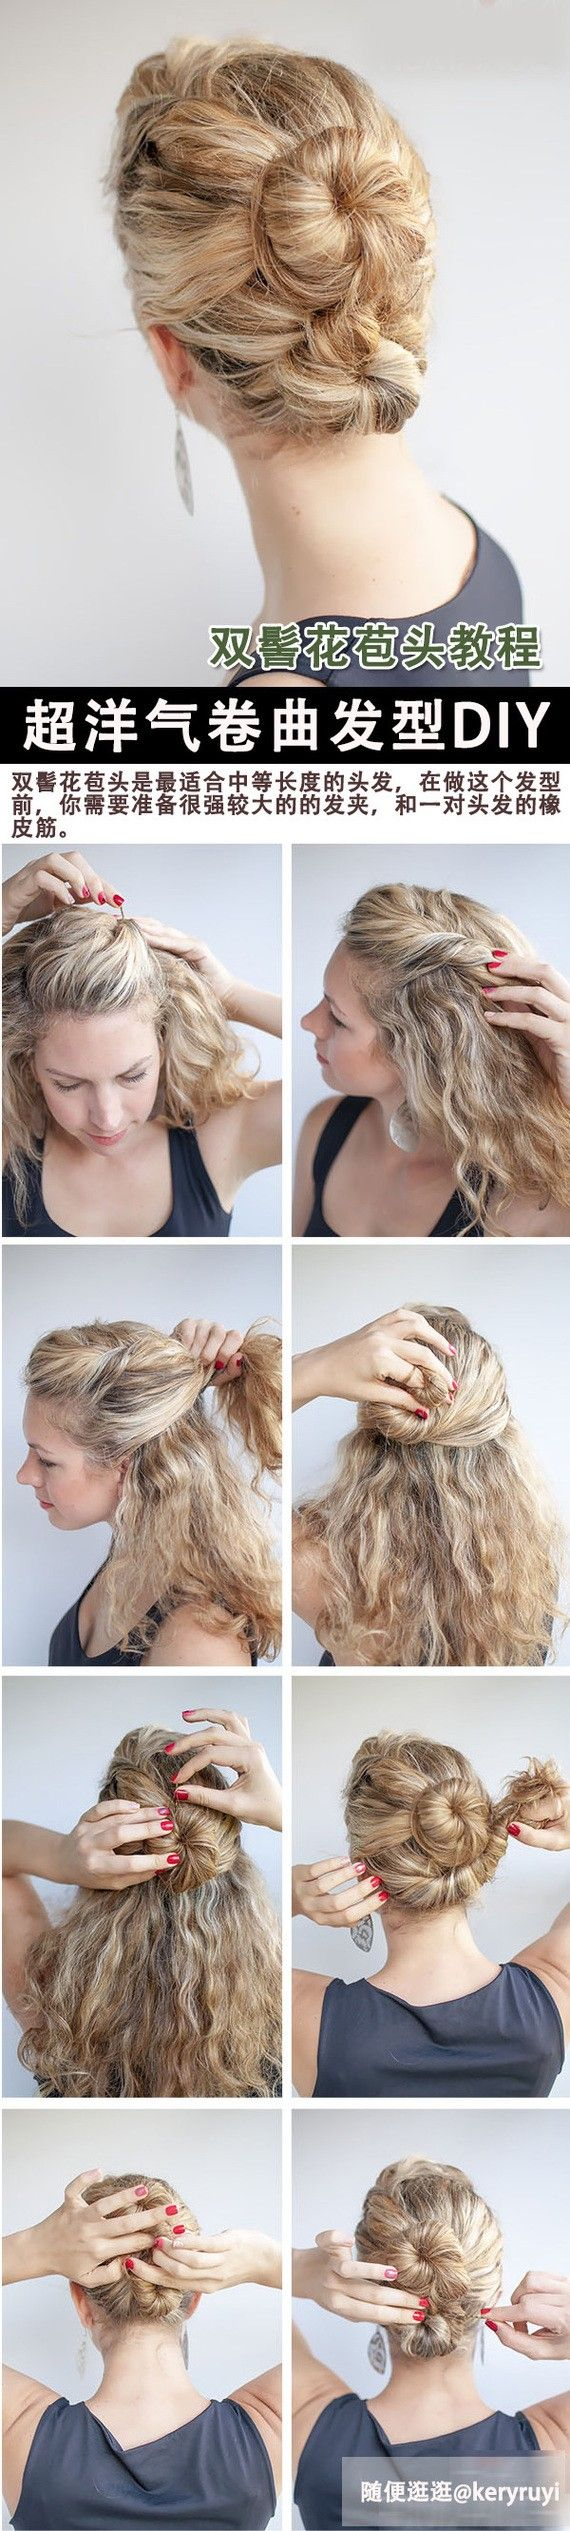 Hard to find updos for long naturally curlyfrizzy hair